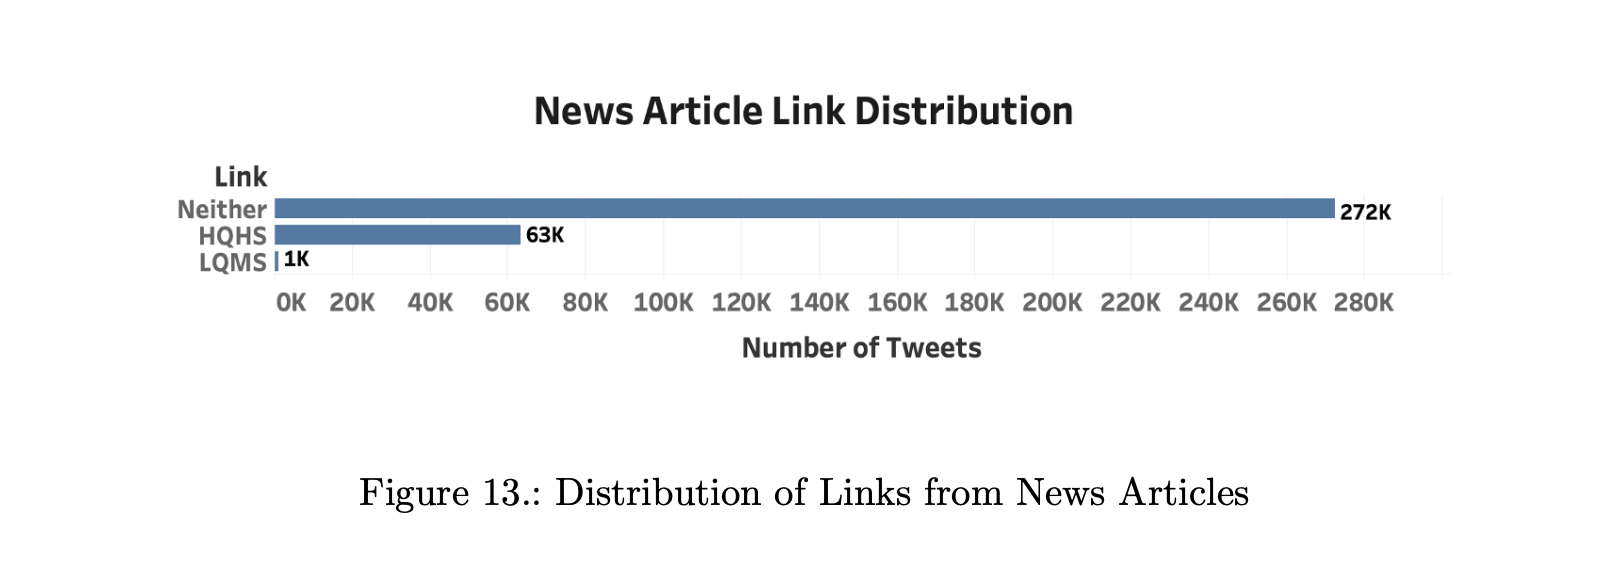 news article link distribution from news articles - link category/number of tweets